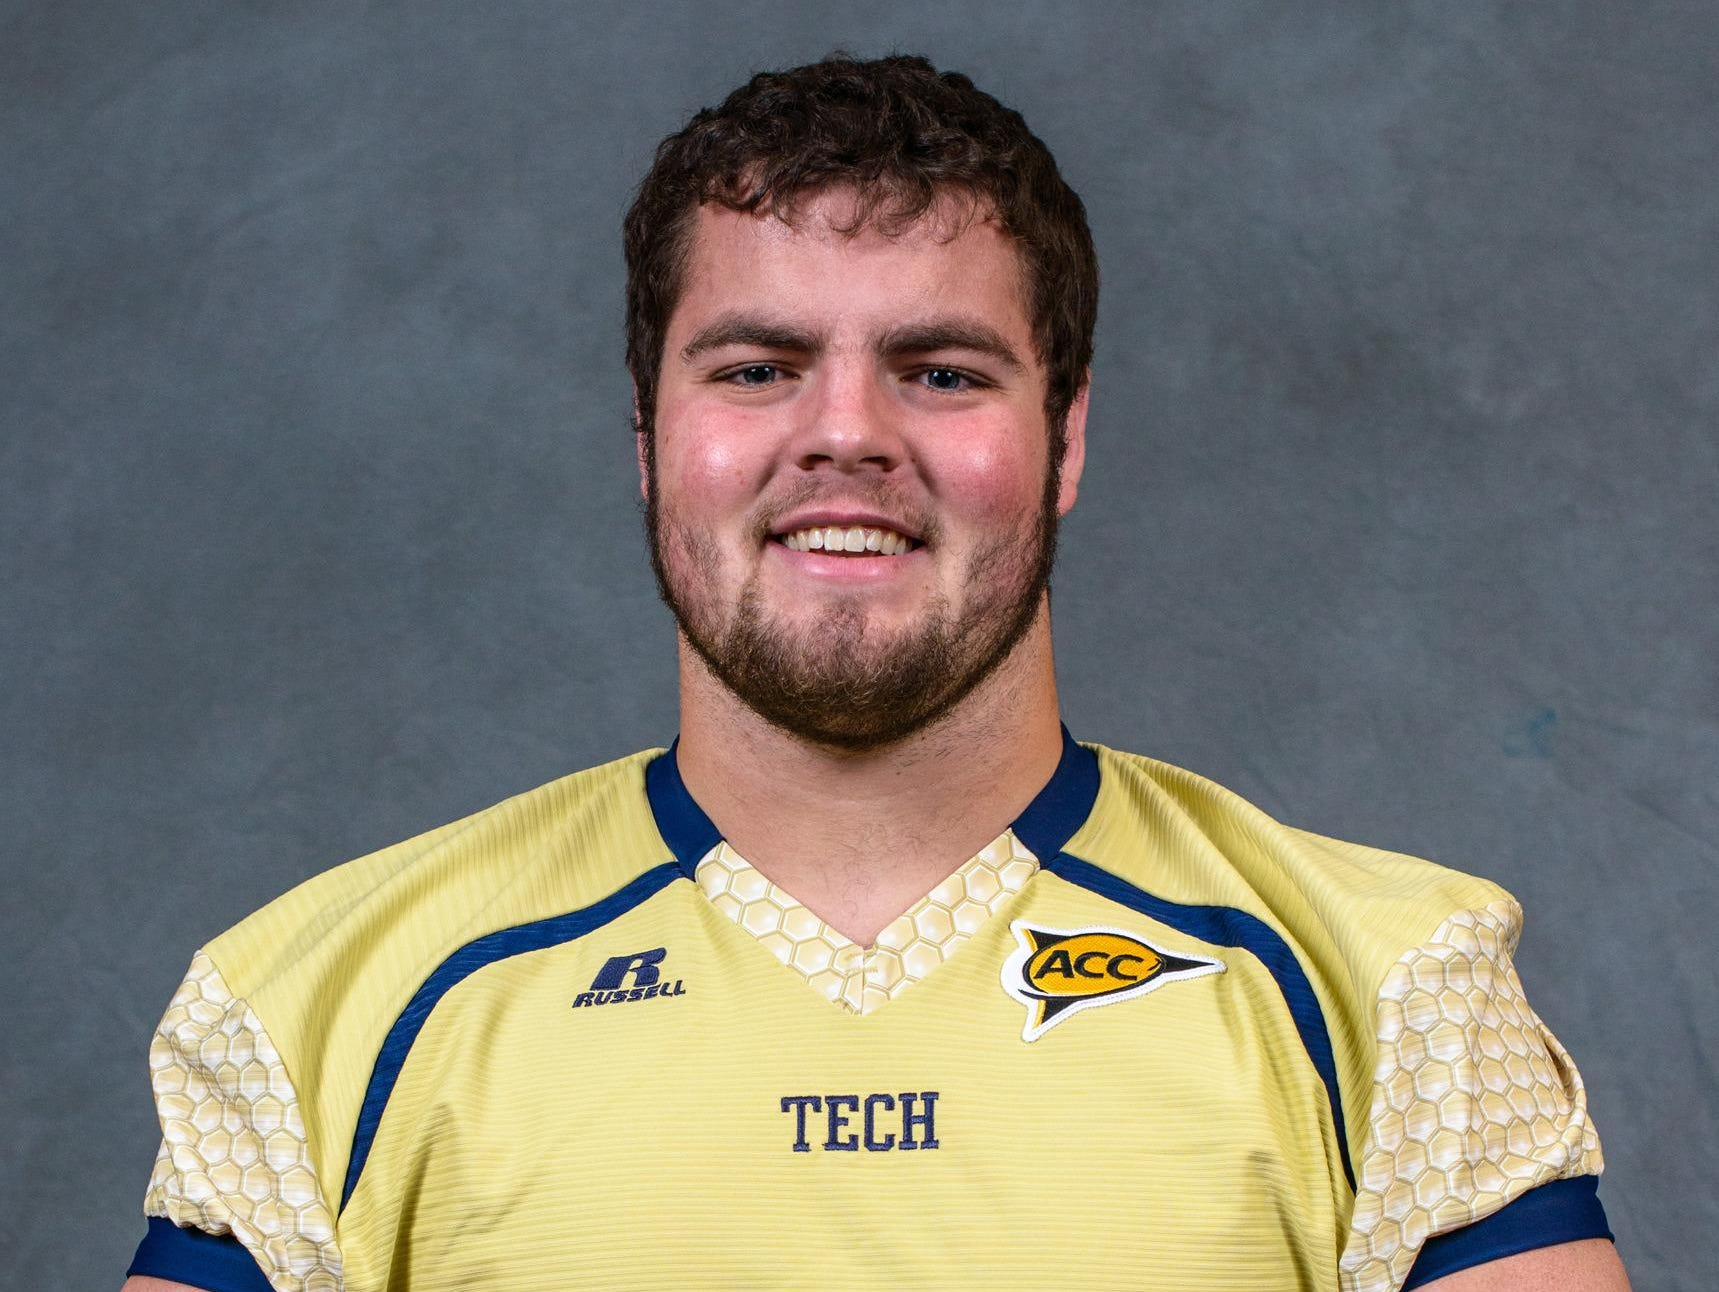 Georgia Tech offensive lineman Trey Braun is entering his third year as a starter after a prominent career at Leon High.